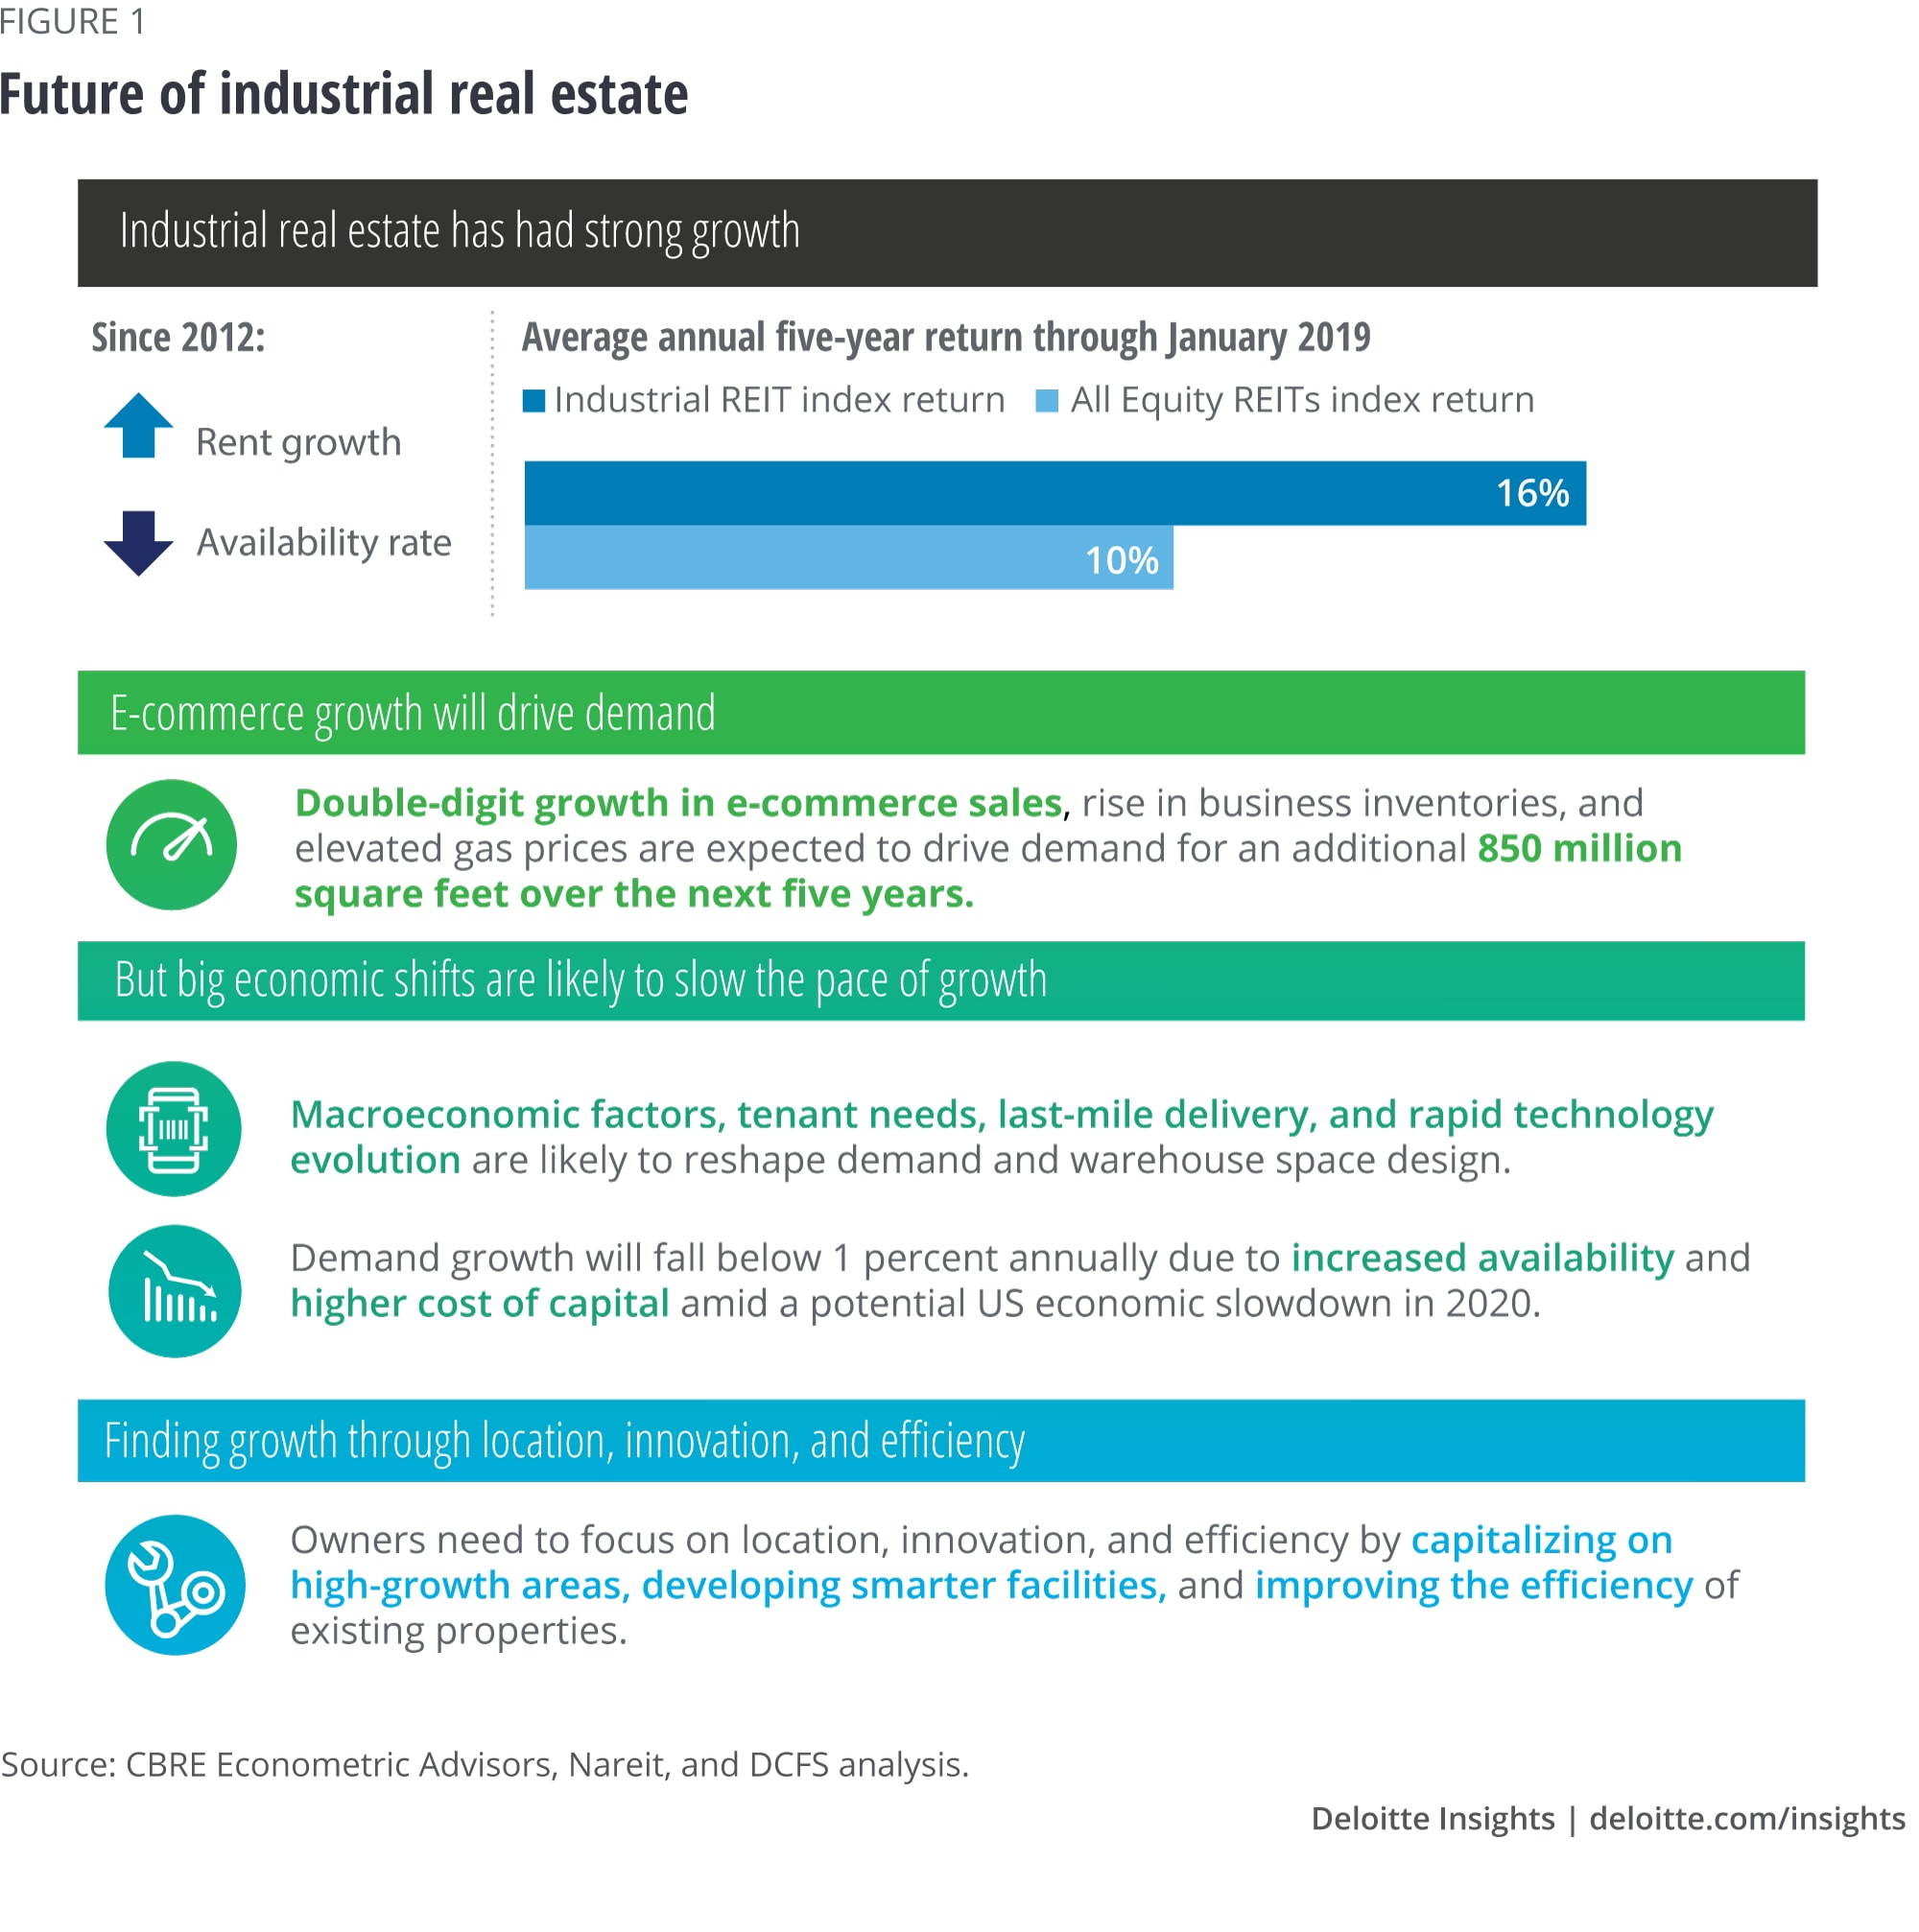 Future of the industrial real estate market | Deloitte Insights